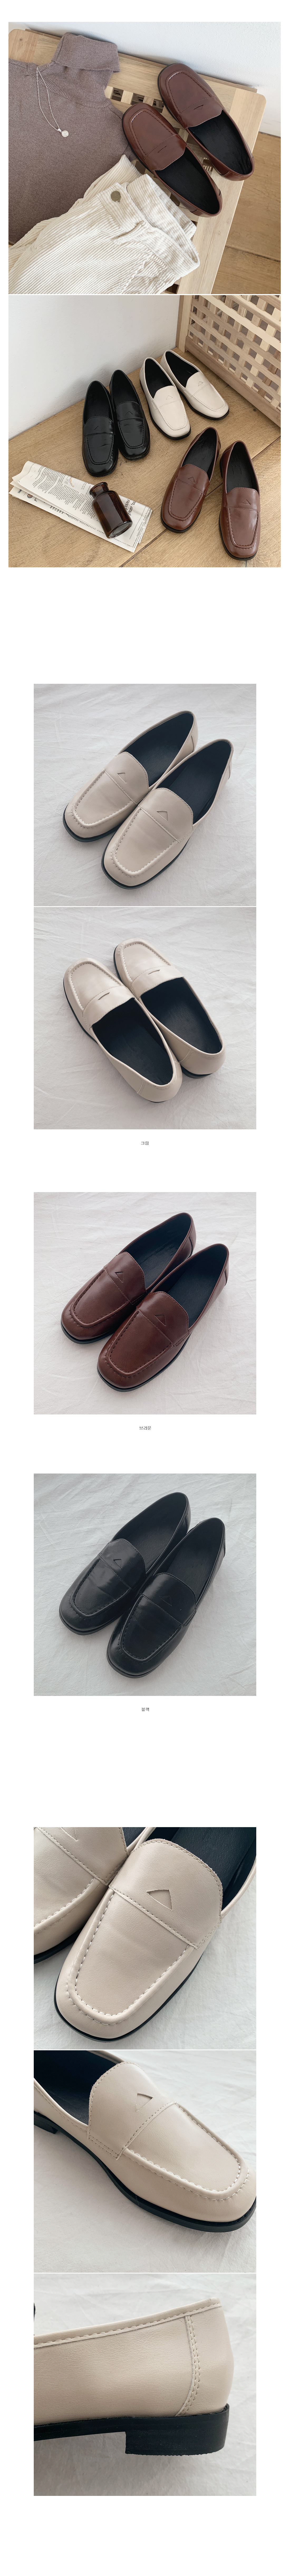 Frame classic loafers